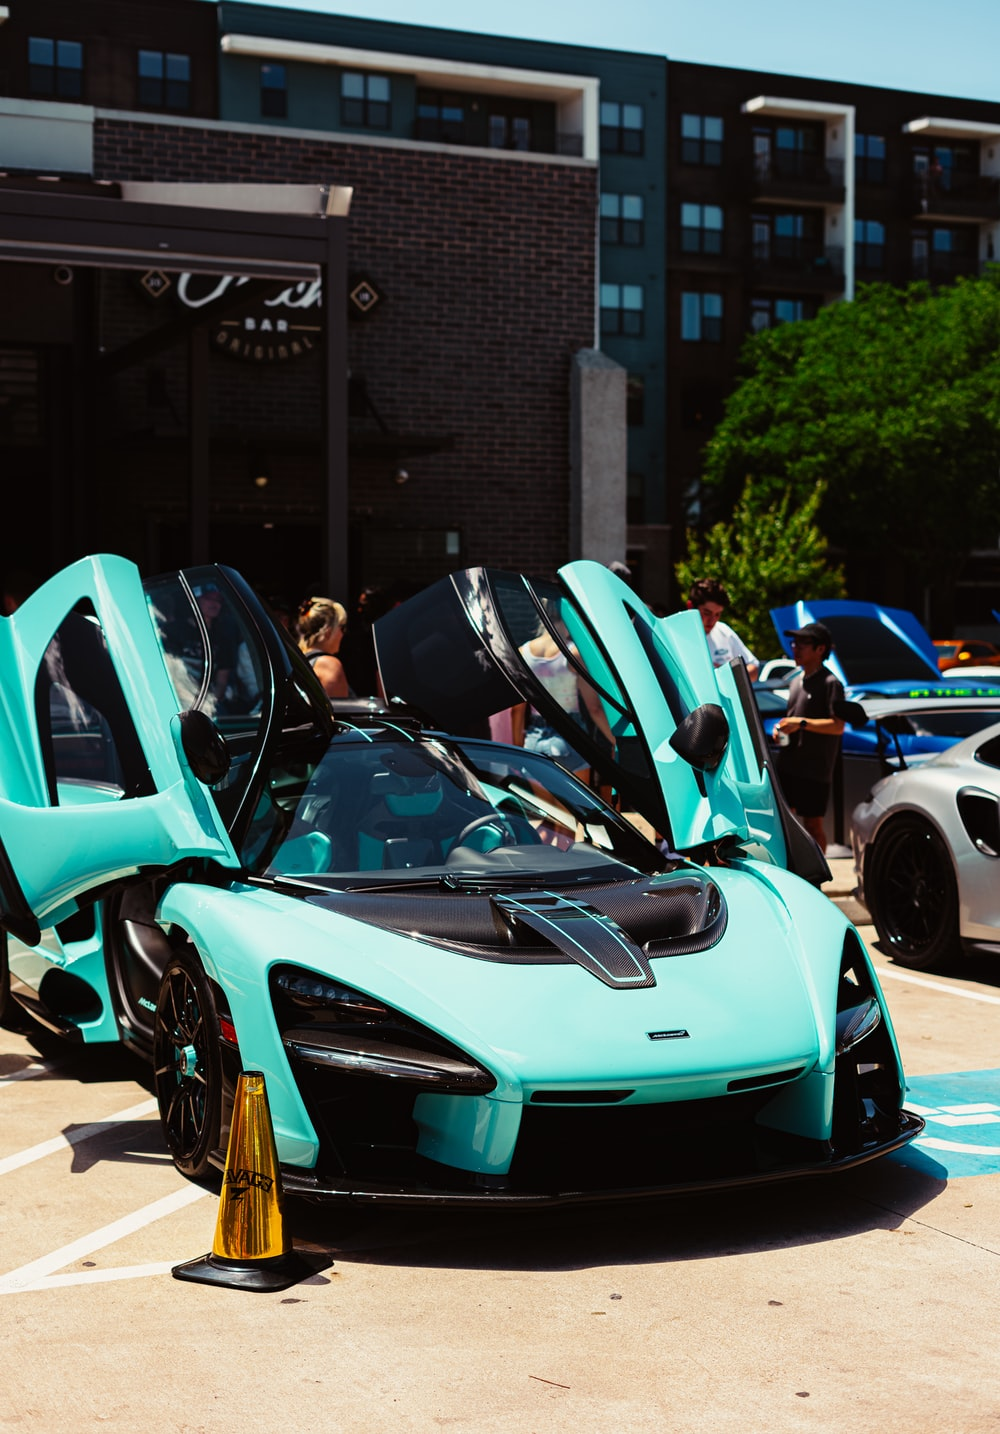 blue and black sports car parked beside blue car during daytime